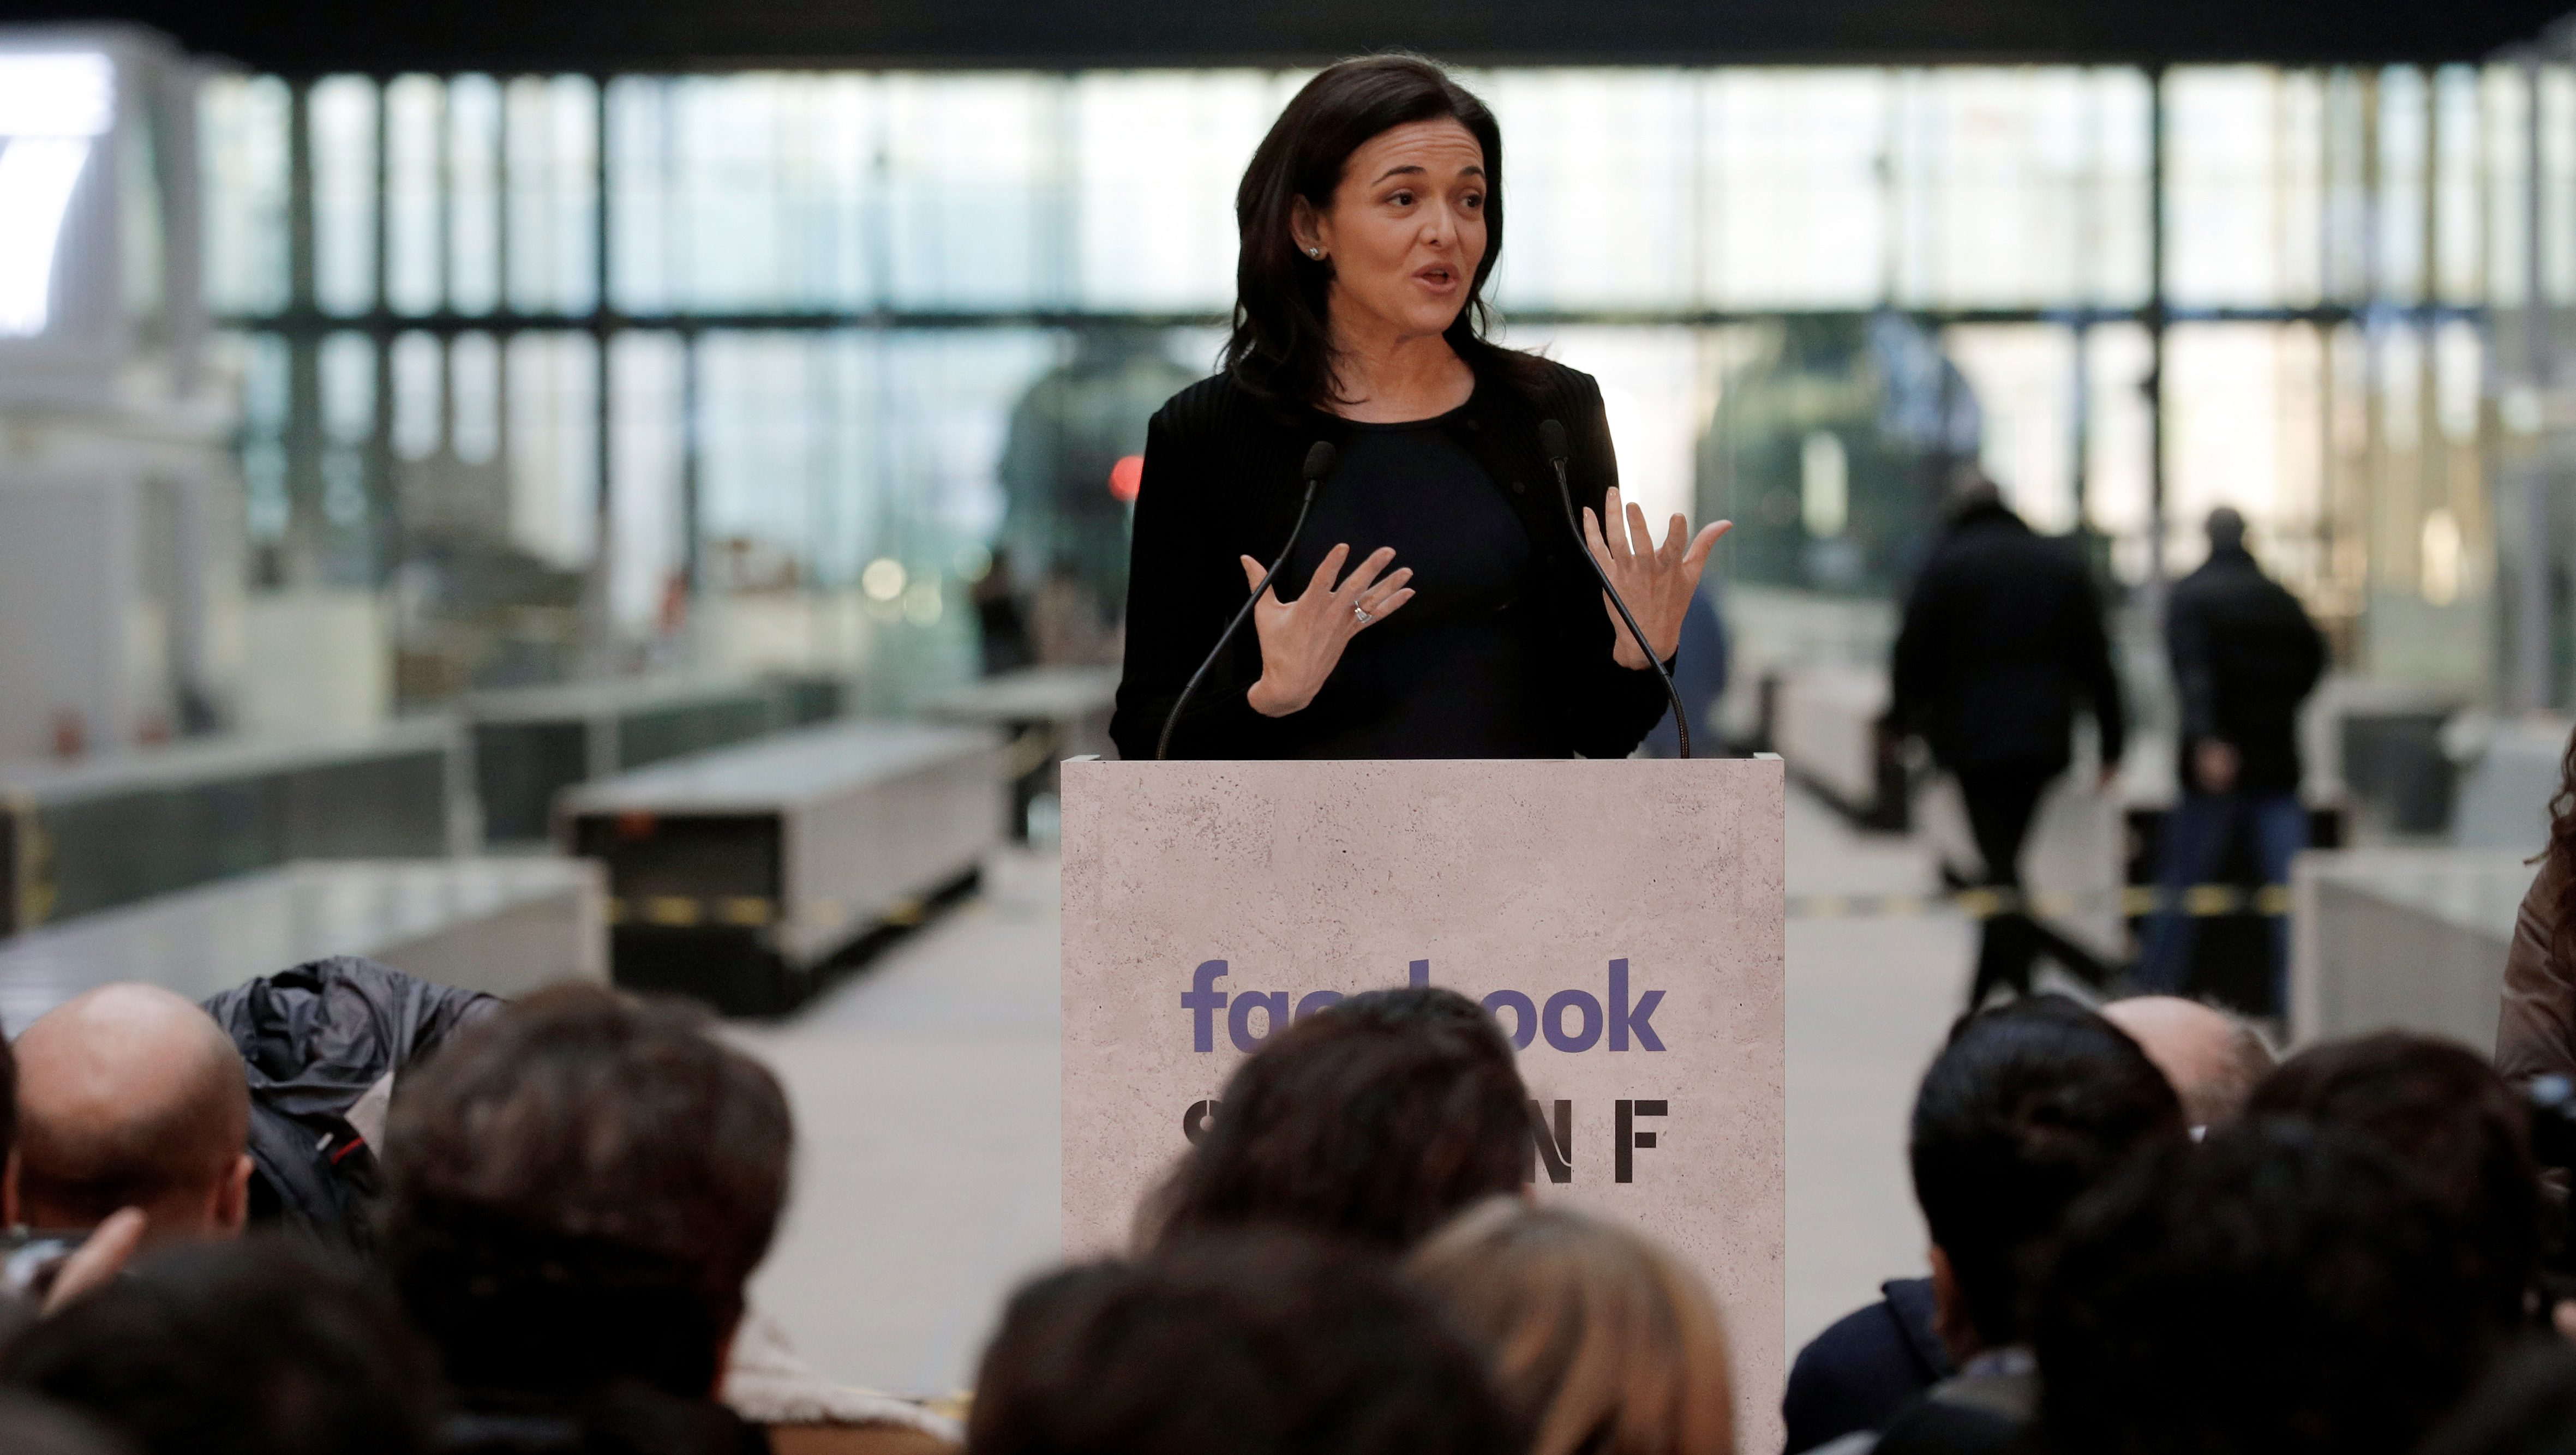 Sheryl Sandberg, Chief Operating Officer of Facebook, delivers a speech during a visit in Paris, France, January 17, 2017, at a start-up companies gathering at Paris' Station F site as the company tries to head off tougher regulation by Germany. REUTERS/Philippe Wojazer - RTSVUXW